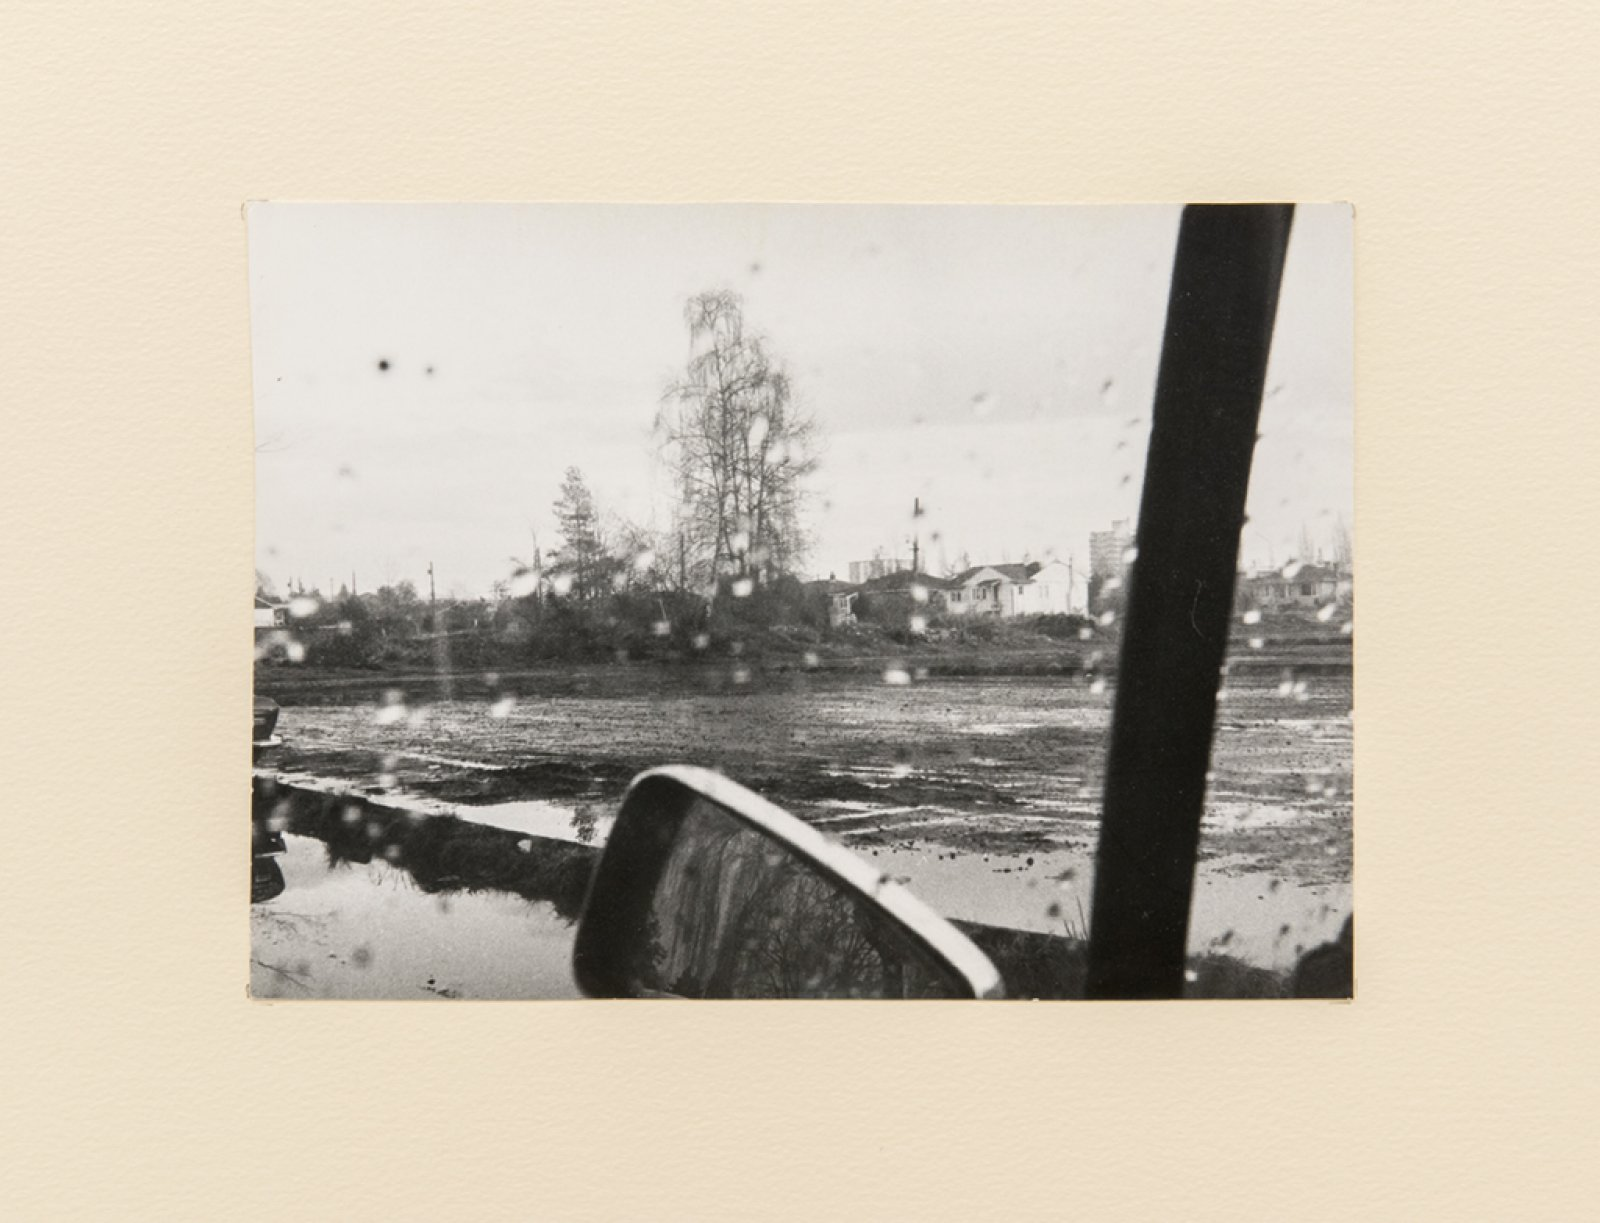 Ian Wallace, Untitled, 1970–1995, silver print mounted on paper,7 x 10 in. (18 x 24 cm)